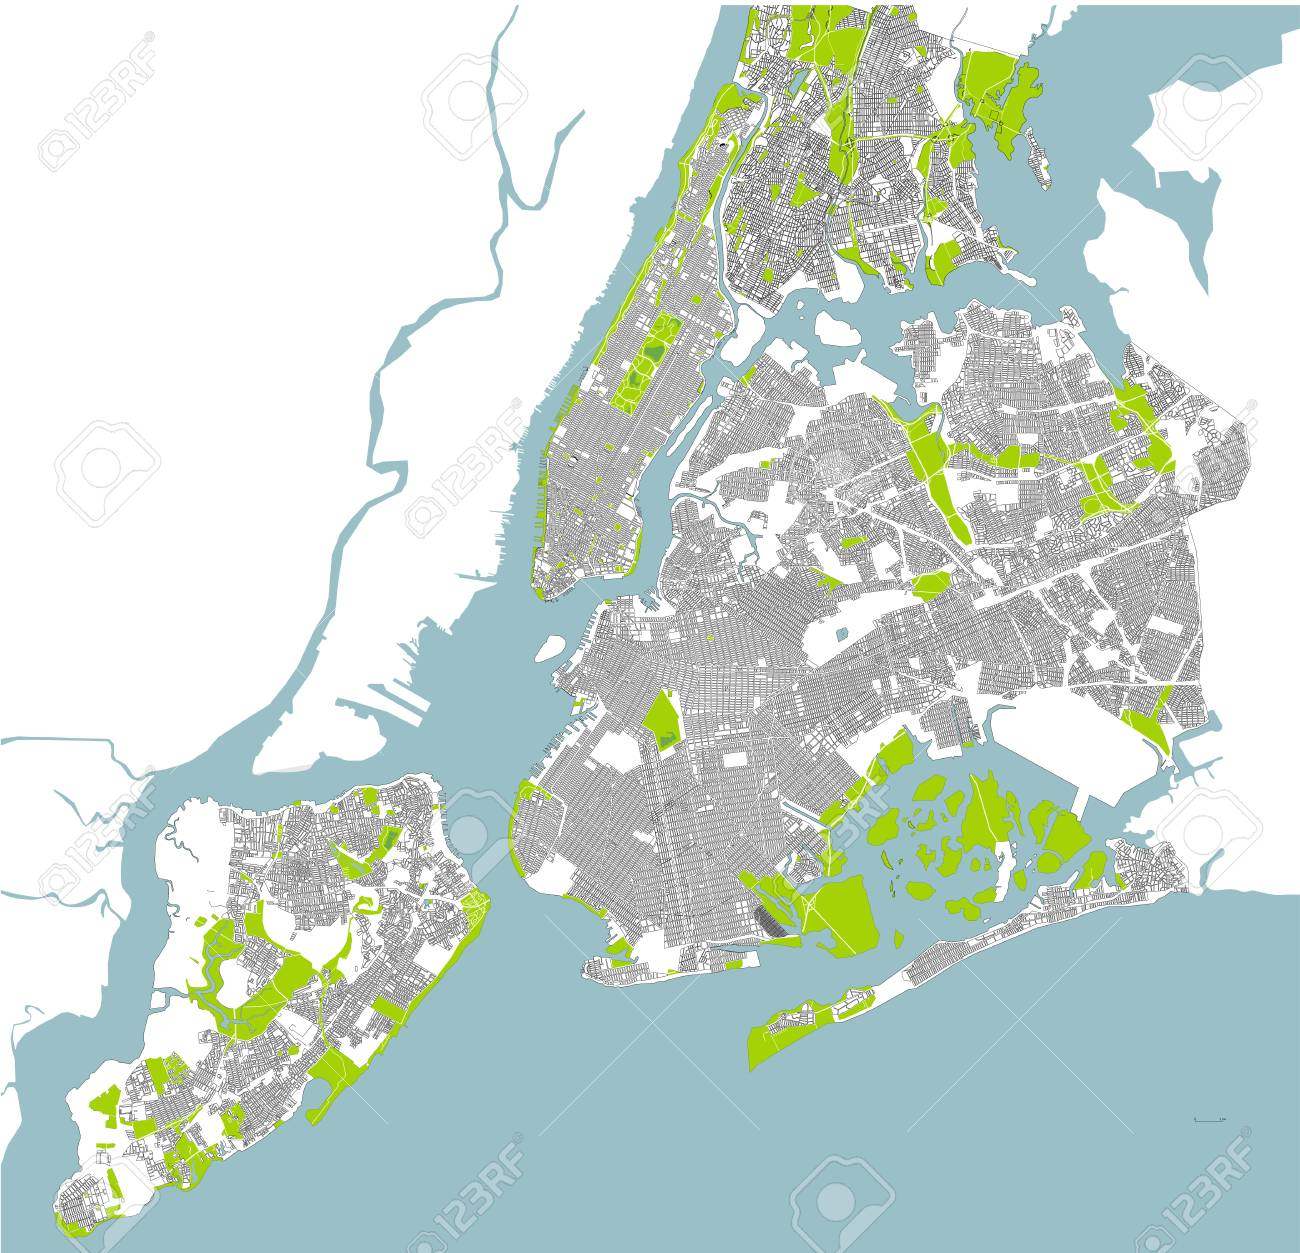 New York City On A Map Of The Us.Map Of The New York City Ny Usa